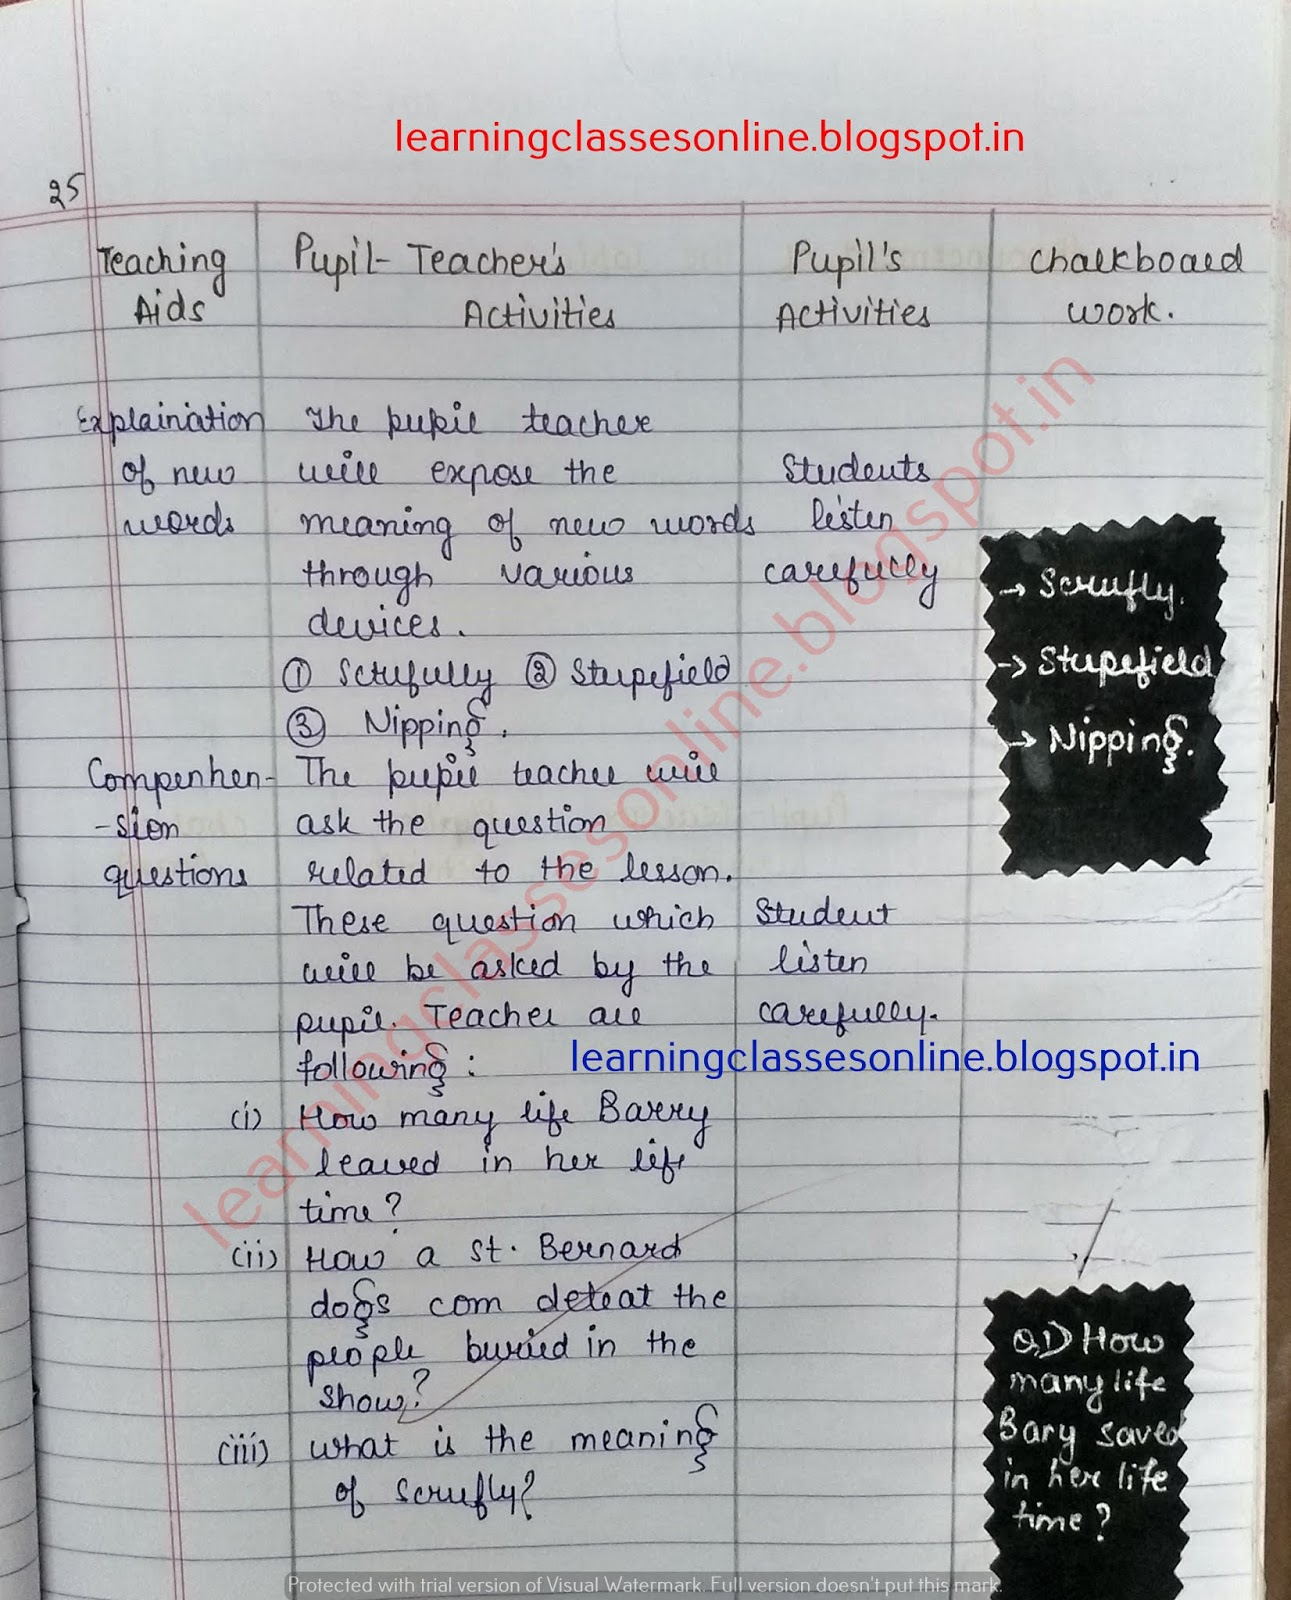 Microteaching Lesson Plan For English, Lesson Plan For Grade 1 English, Lesson Plan For Grade 3 English,